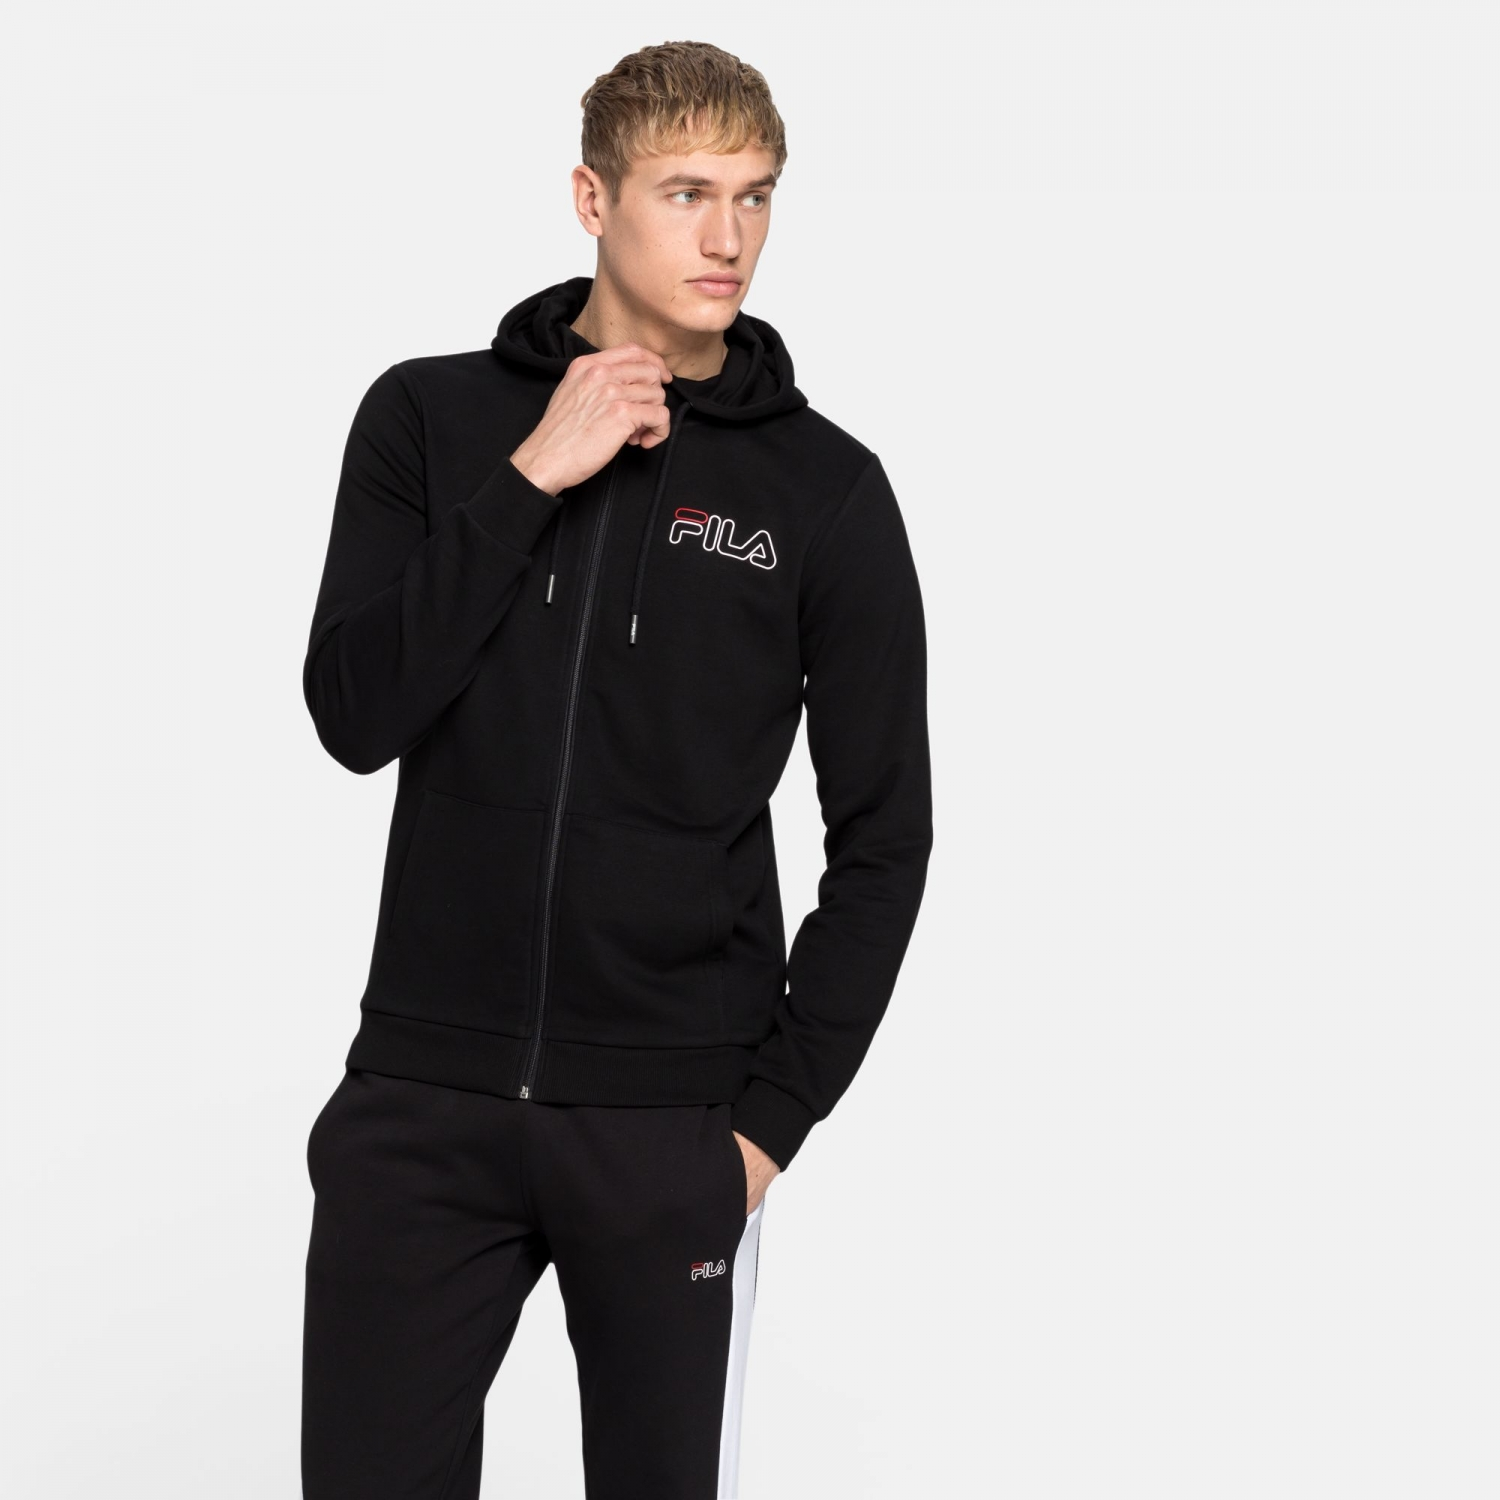 Fila Mick Hoody Jacket black Bild 1